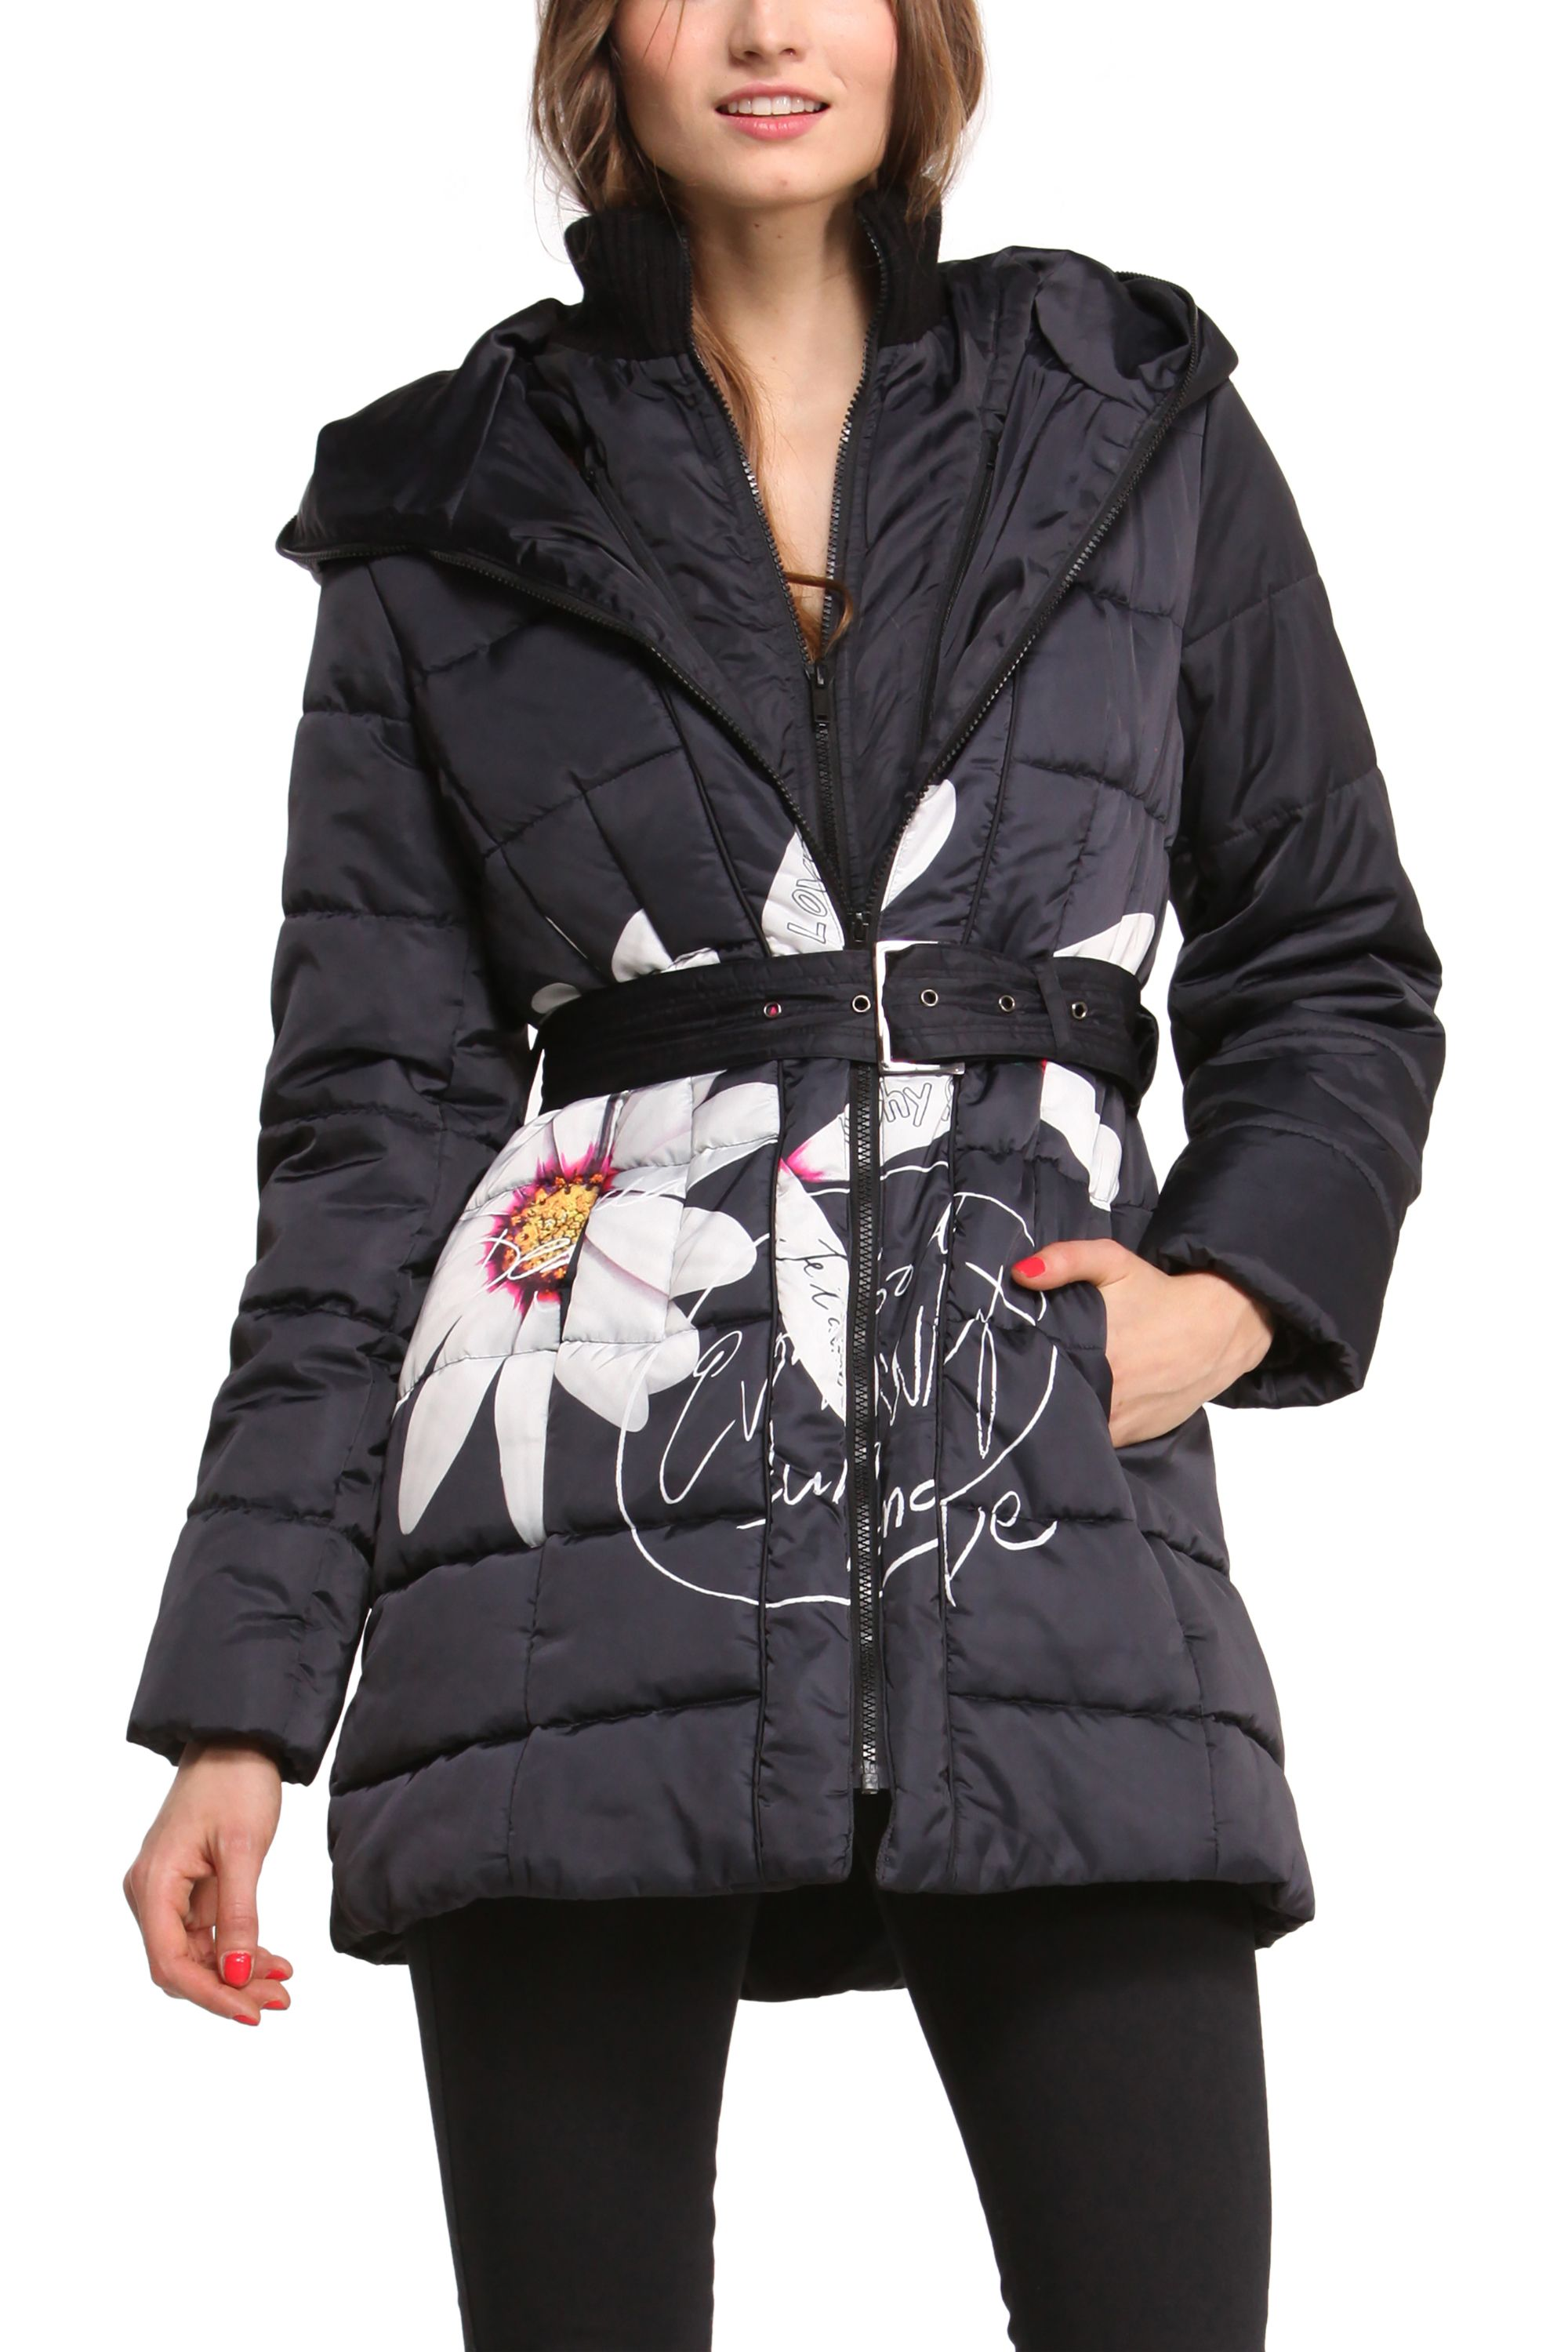 Pesos padded coat